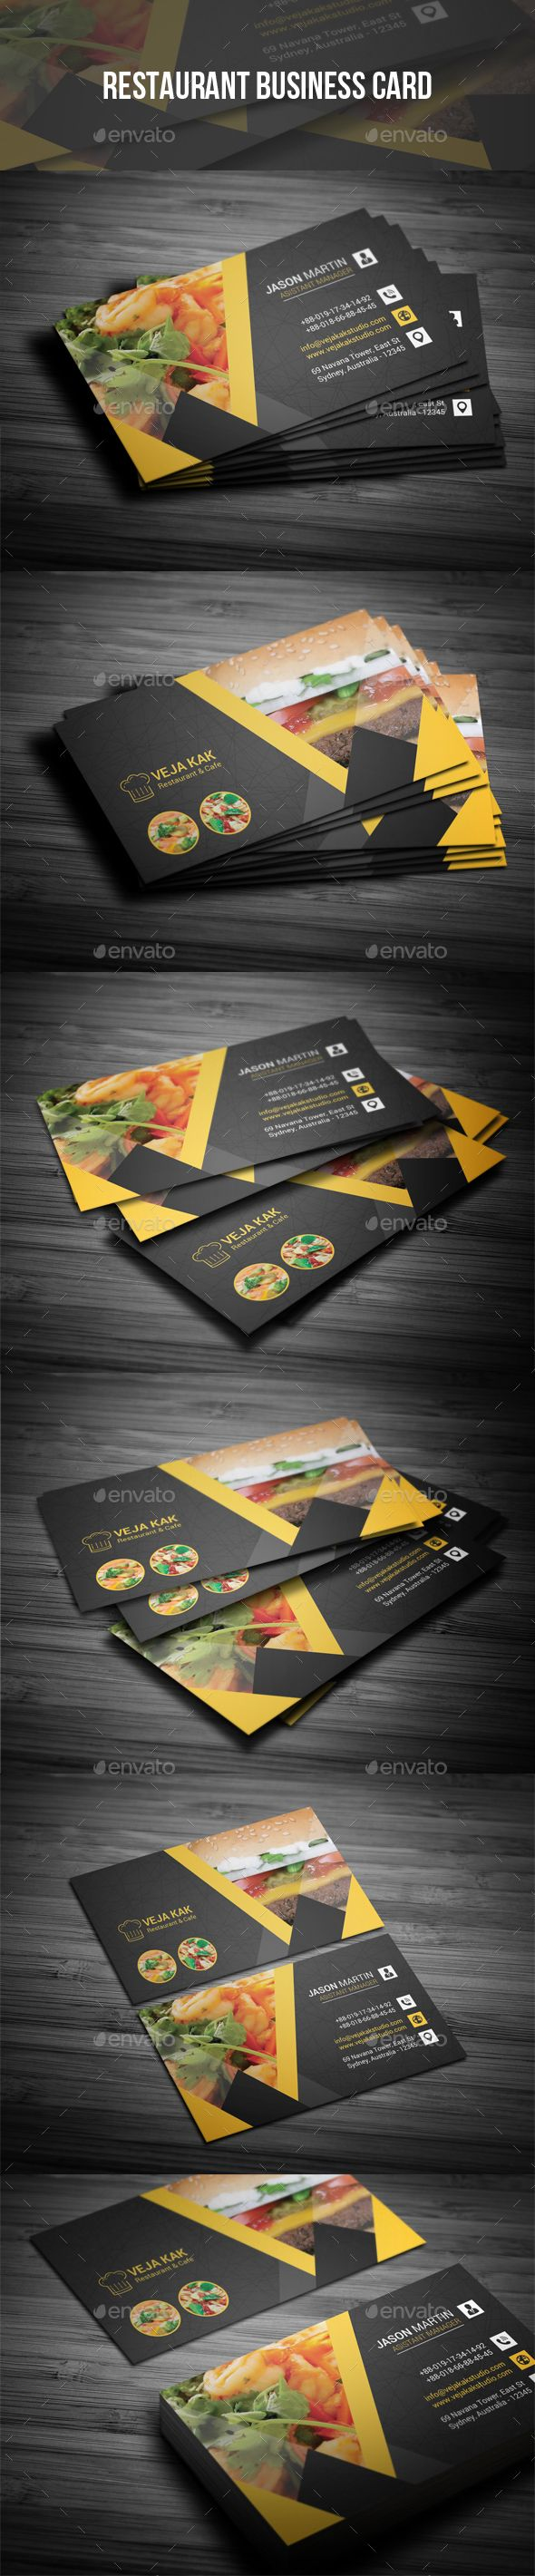 Restaurant Business Card - Industry Specific Business Cards Download here : https://graphicriver.net/item/restaurant-business-card/19350729?s_rank=79&ref=Al-fatih